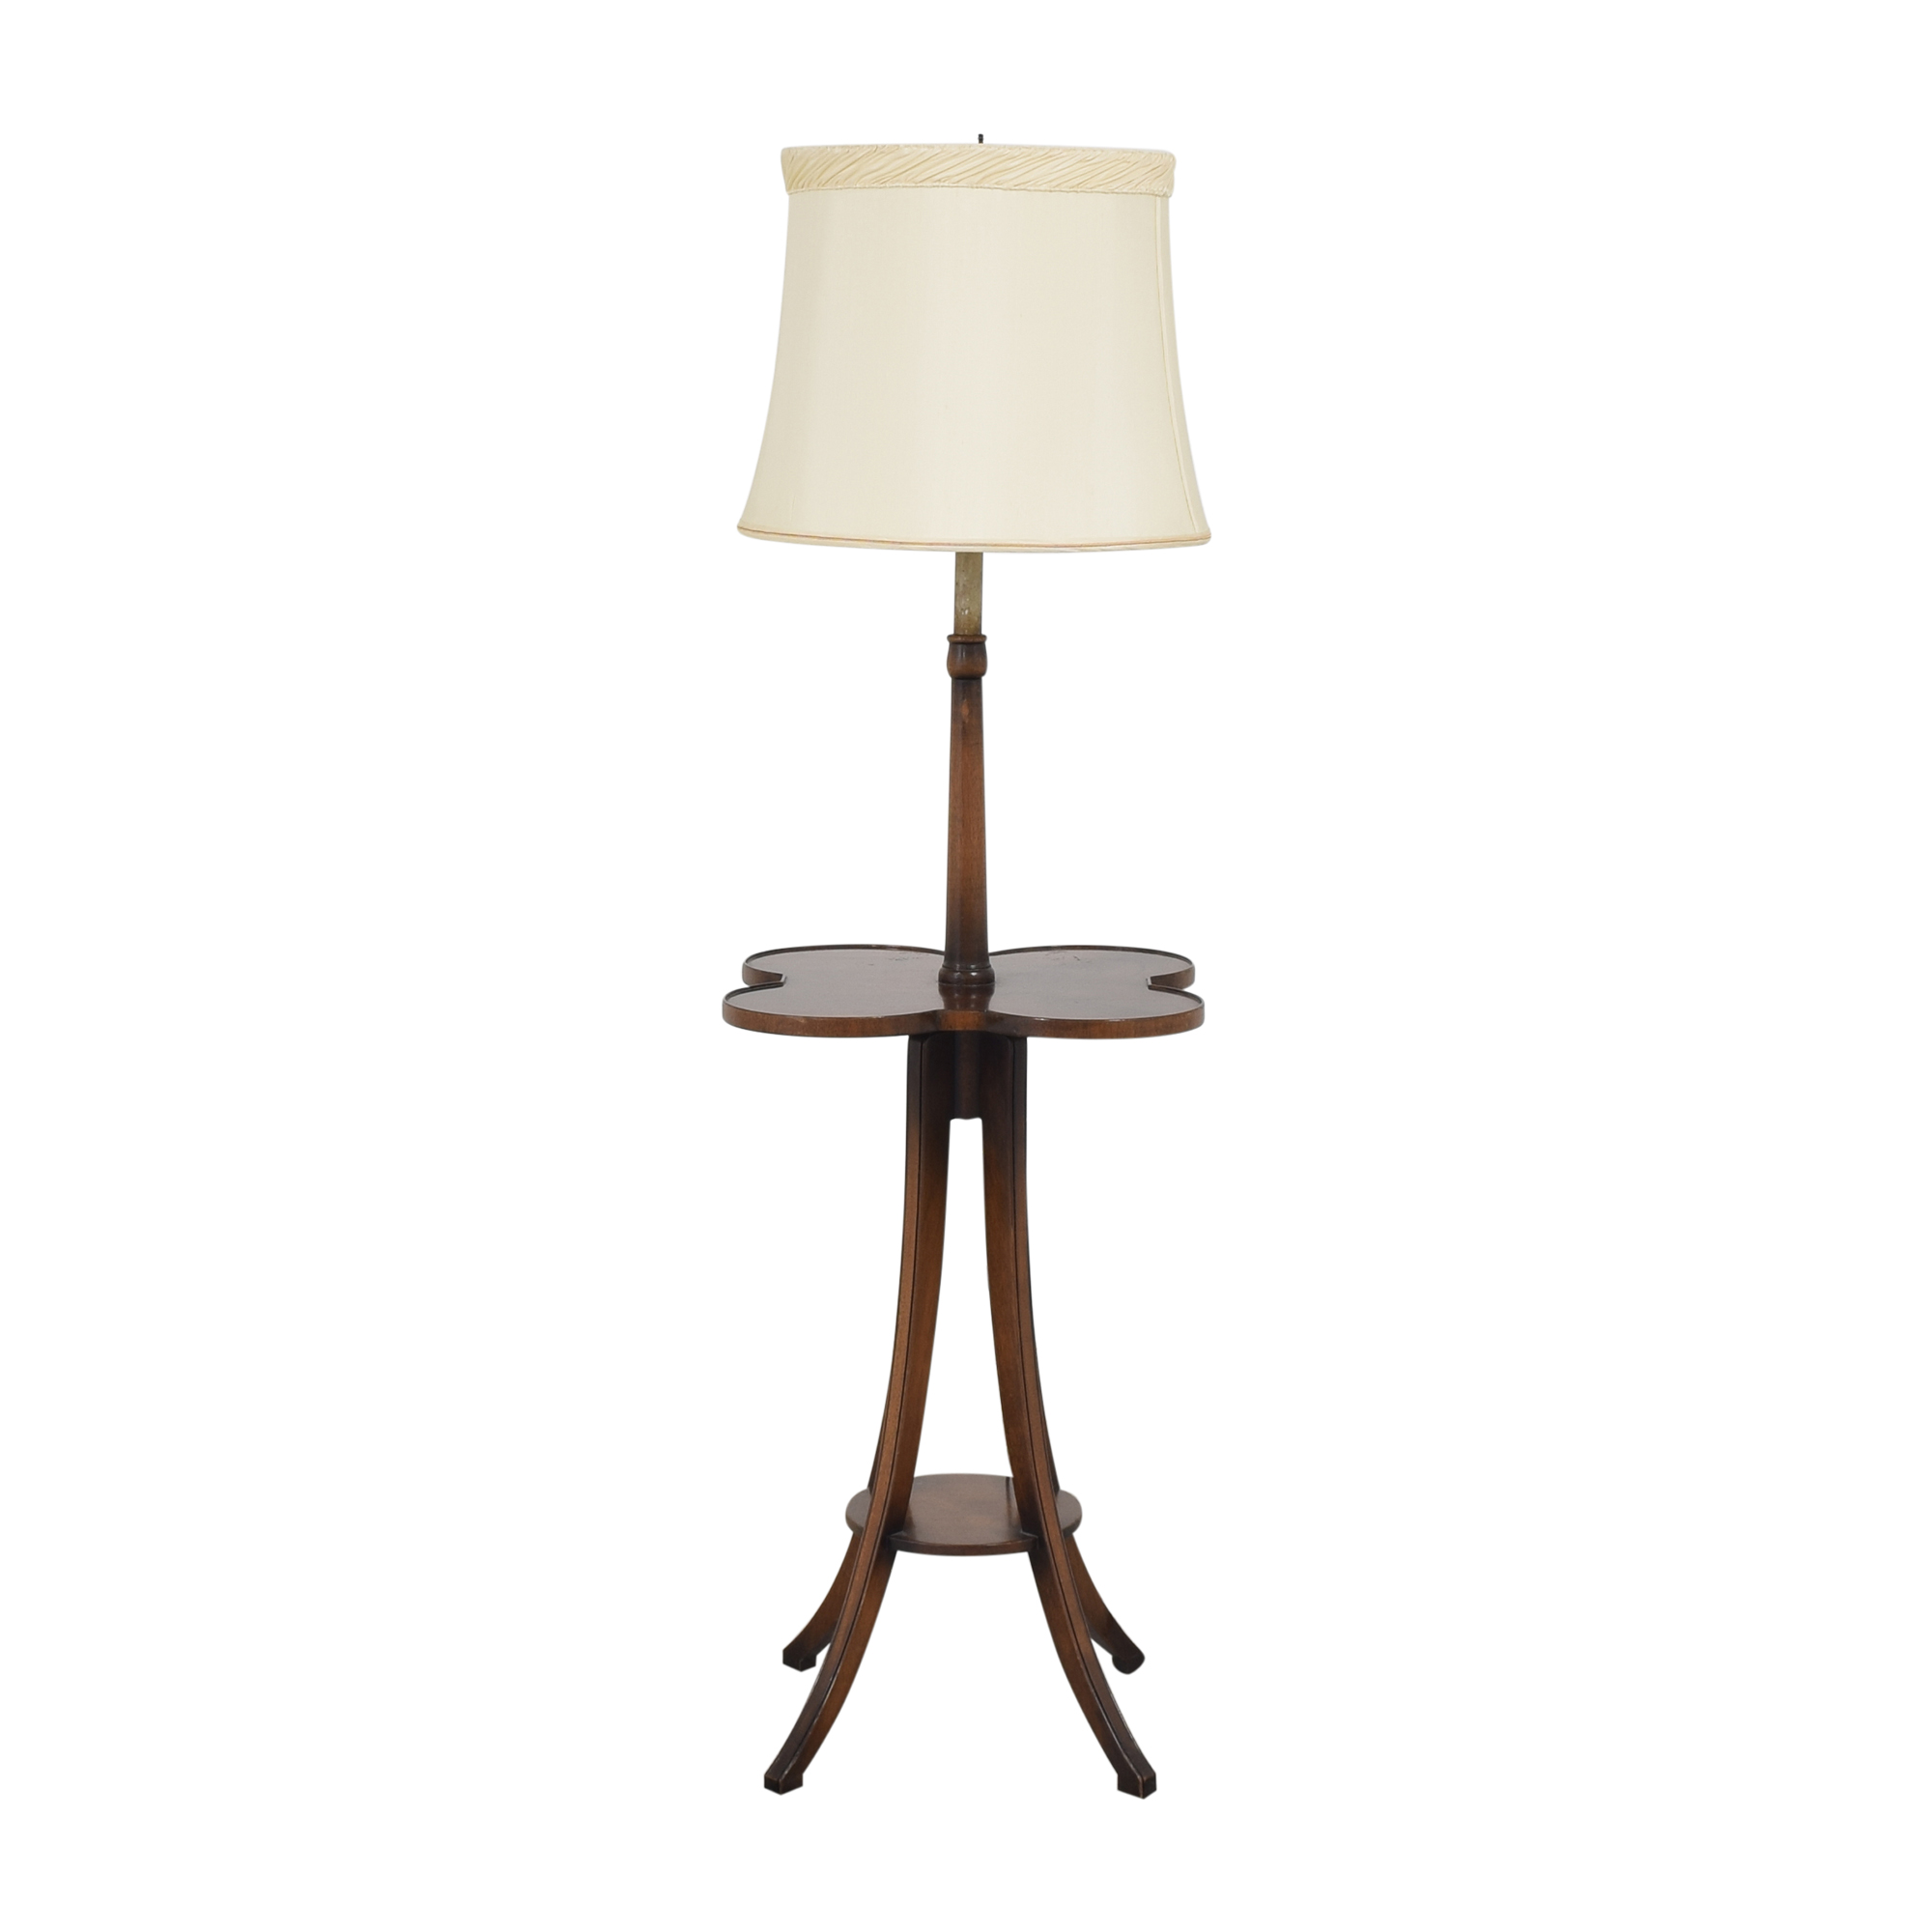 buy Quatrefoil Table Floor Lamp  Decor